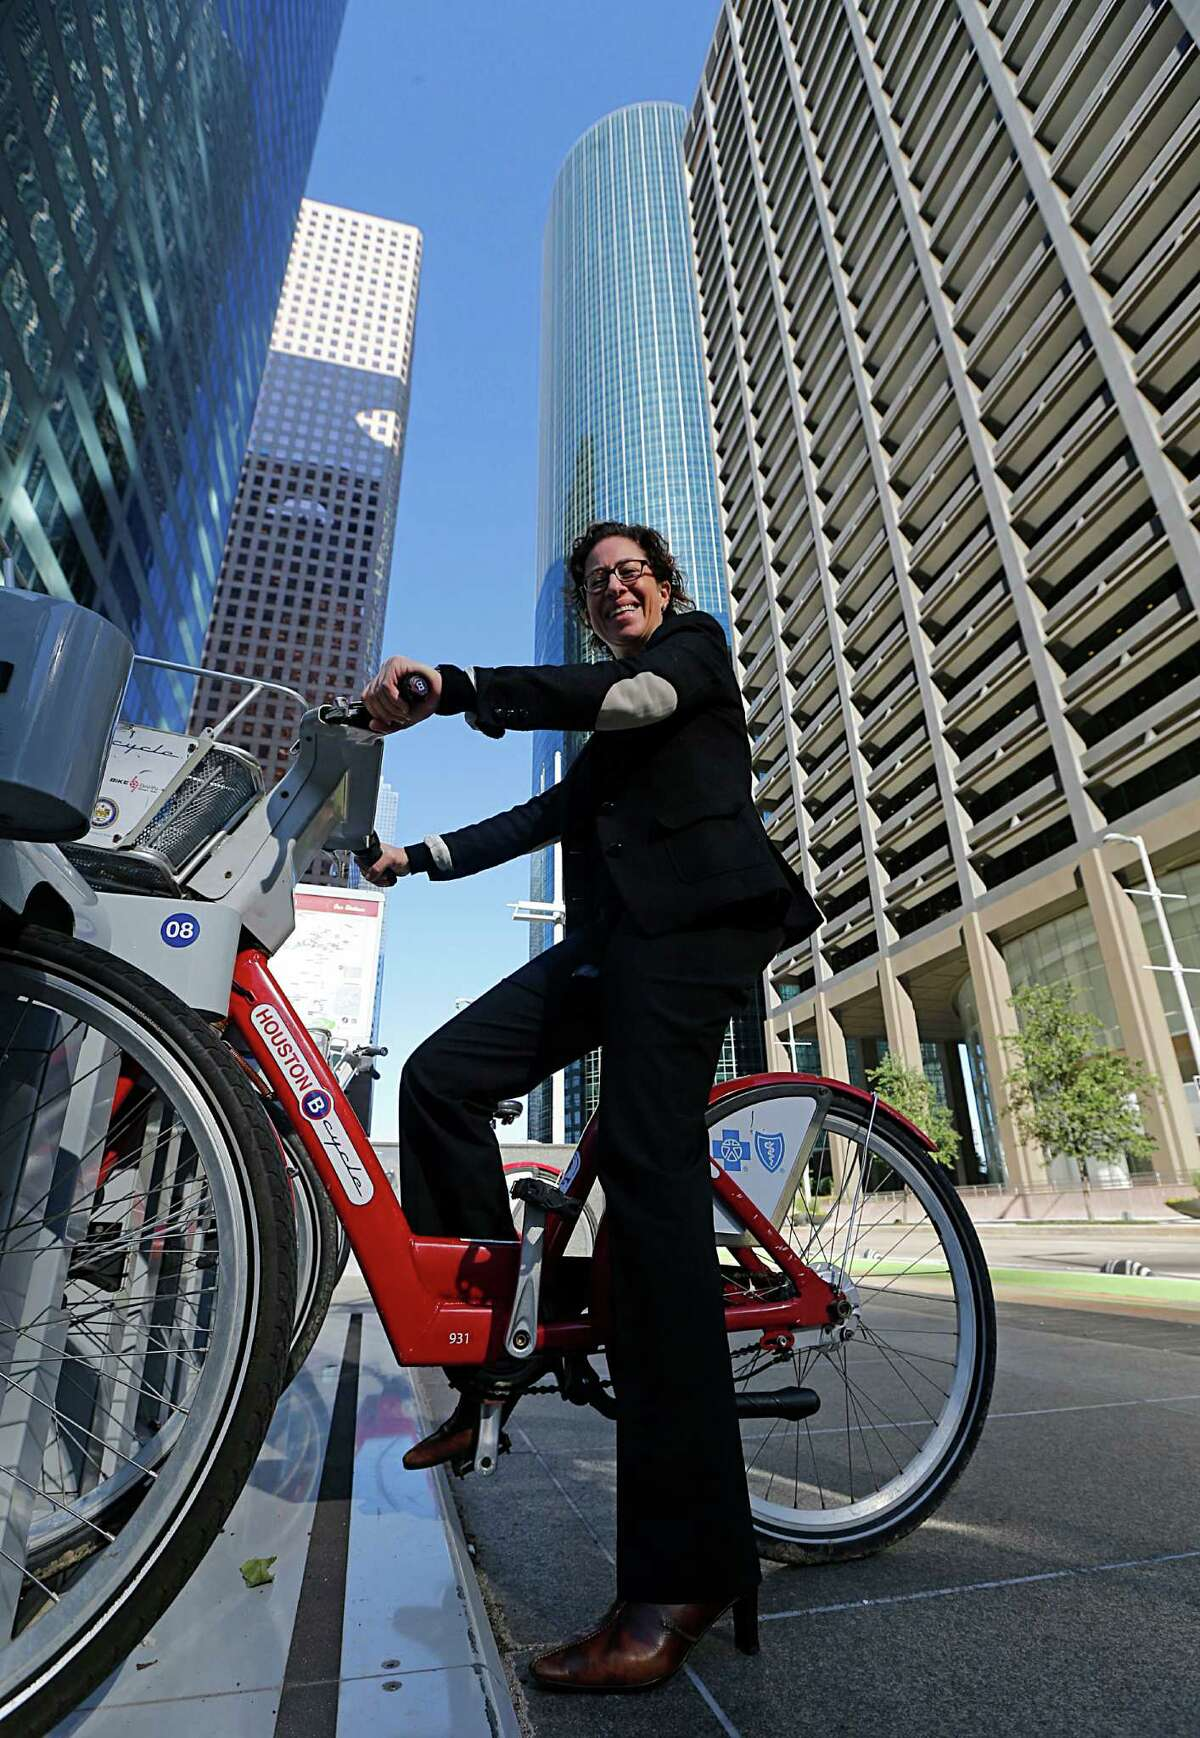 Laura Spanjian, who has left her job in the Office of Sustainability, helped start the city's Bike Share program. Houstonians